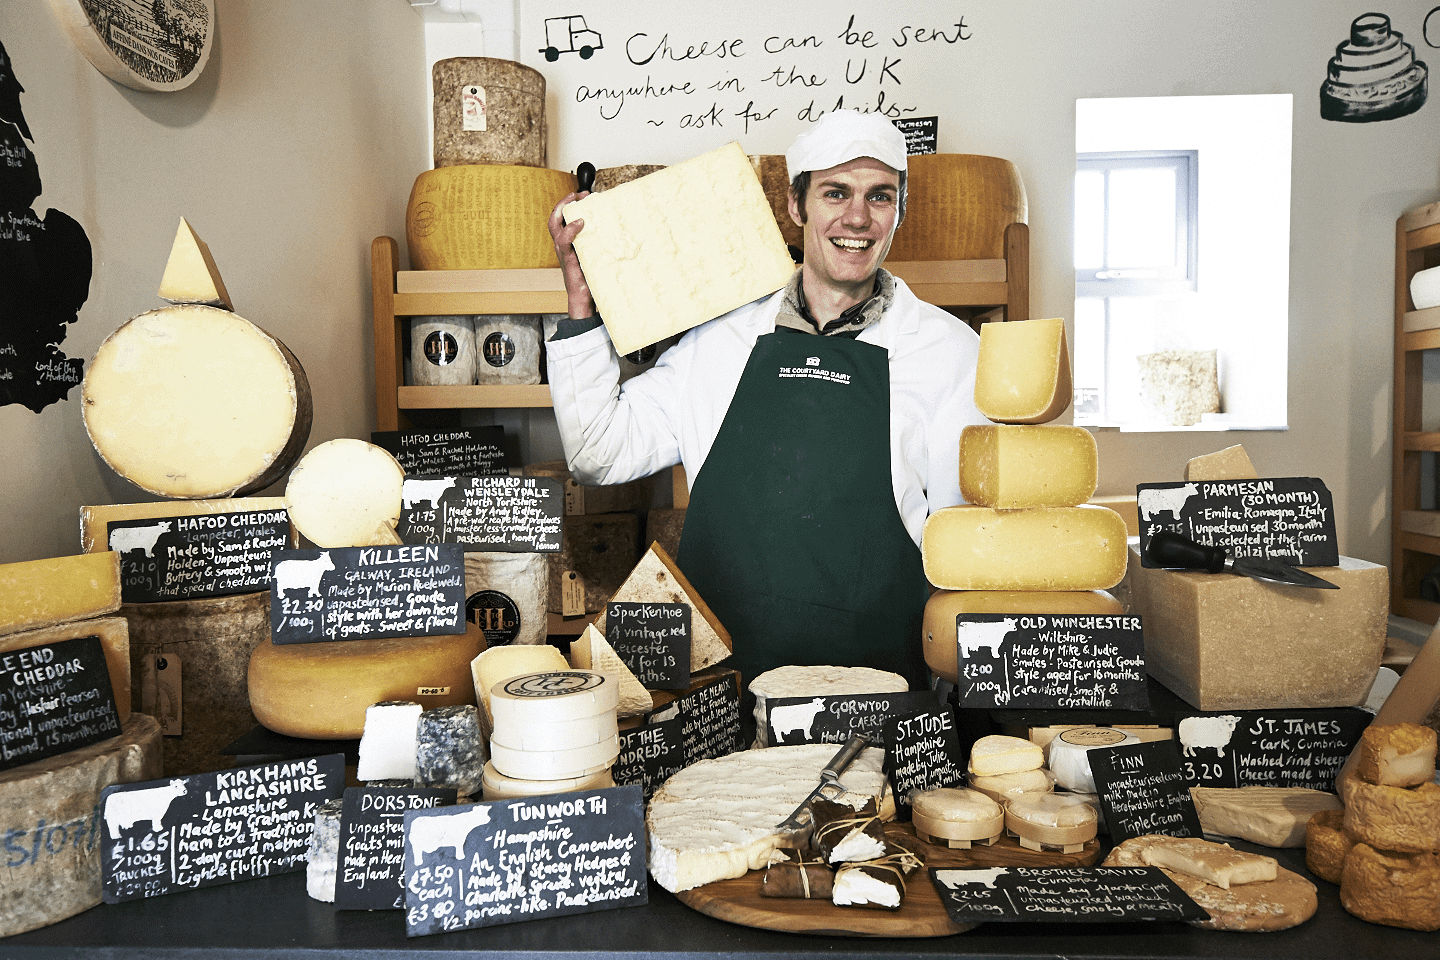 Andy Swinscoe, The Courtyard Dairy recommends the best cheeses to serve with Damson No 12.